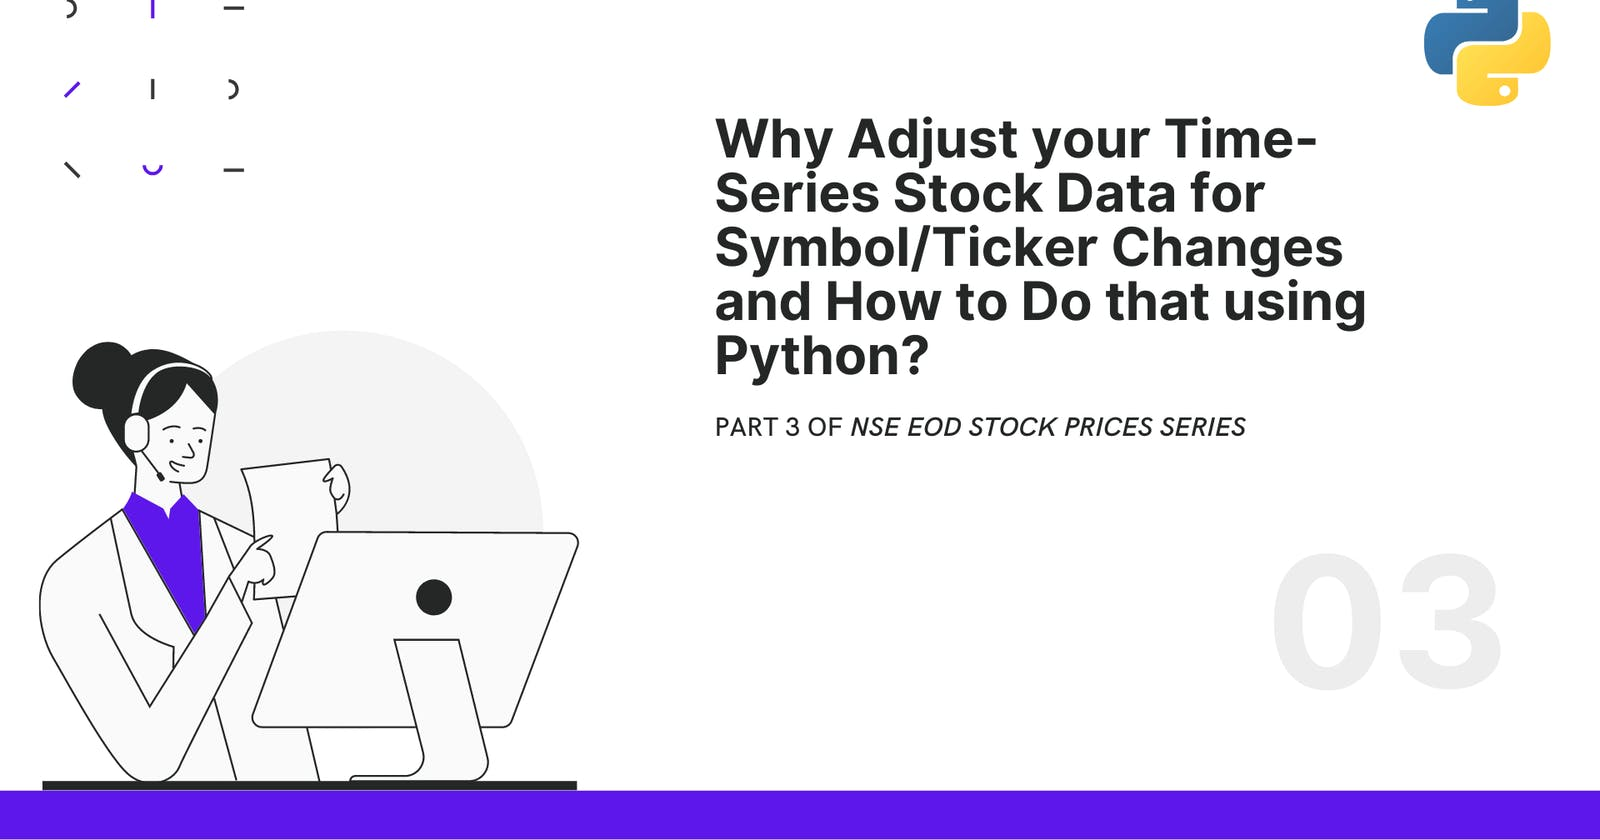 Why Adjust your Time-Series Stock Data for Symbol/Ticker Changes and How to Do that using Python?